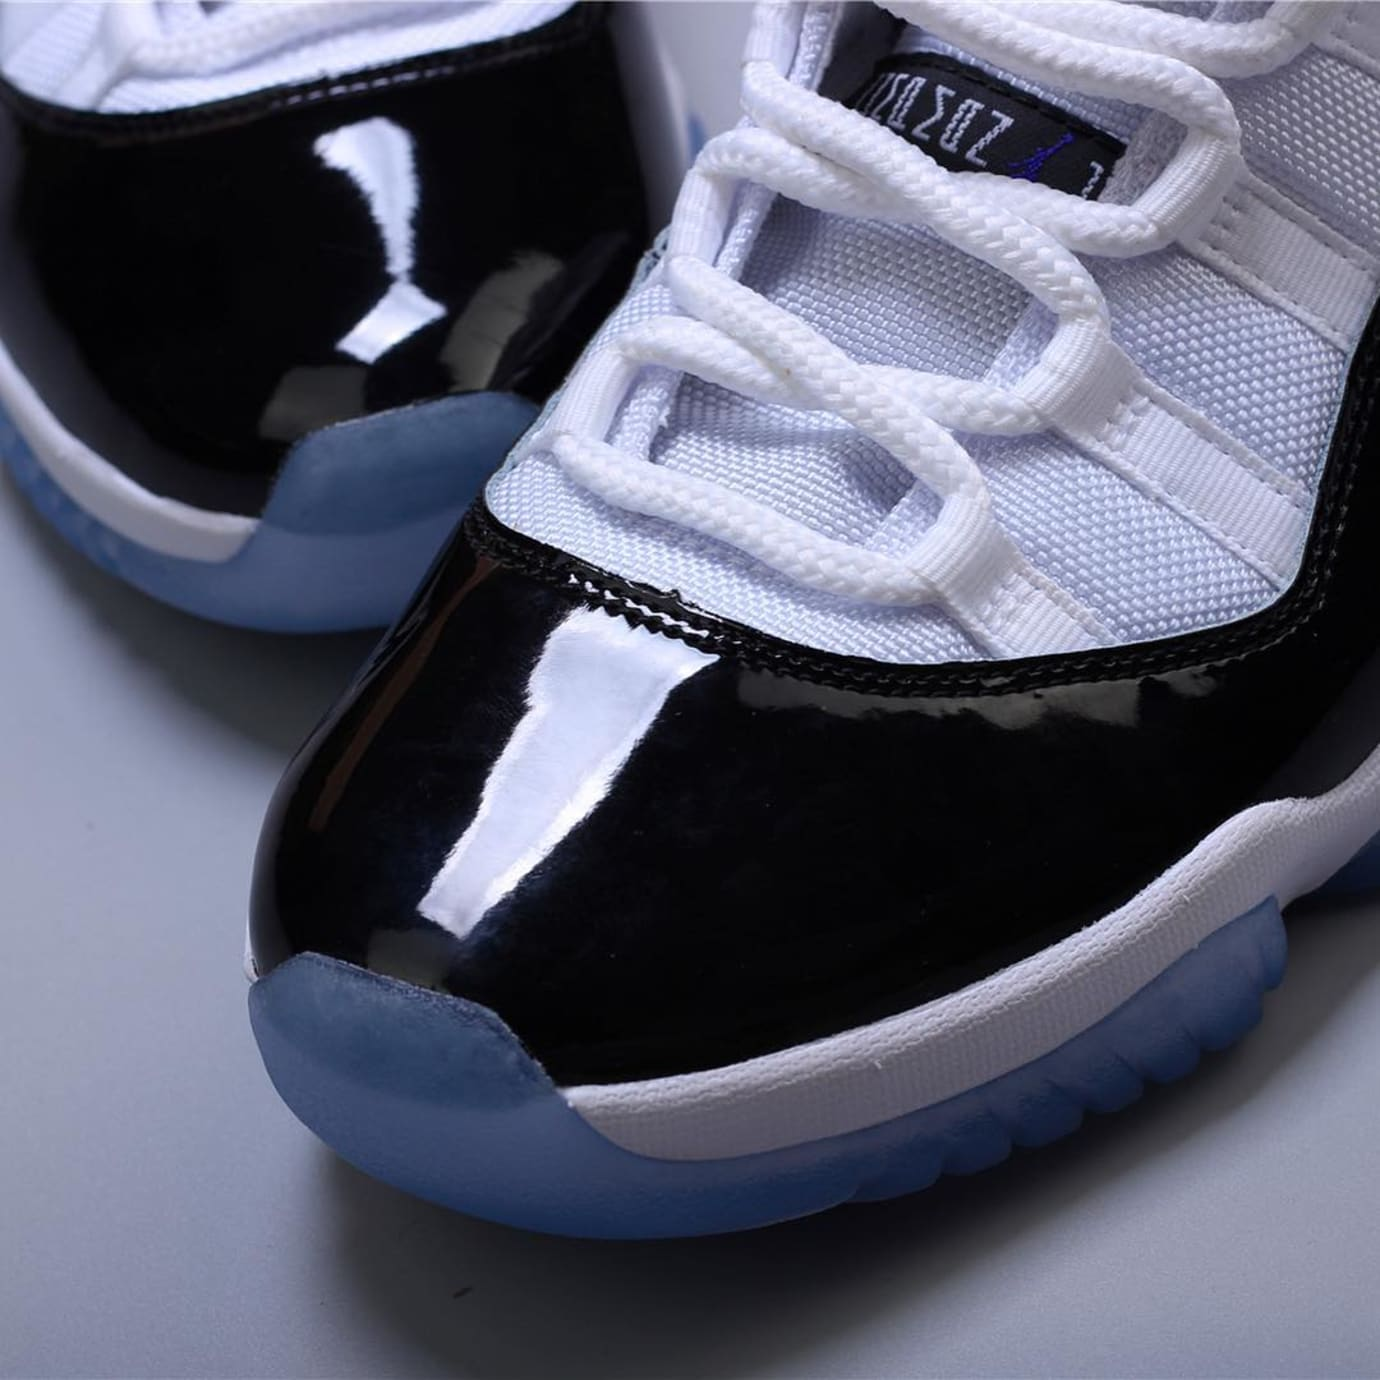 competitive price 41eb8 a8498 Image via hanzuying · Air Jordan 11 XI Concord 2018 Release Date 378037-100  Toebox